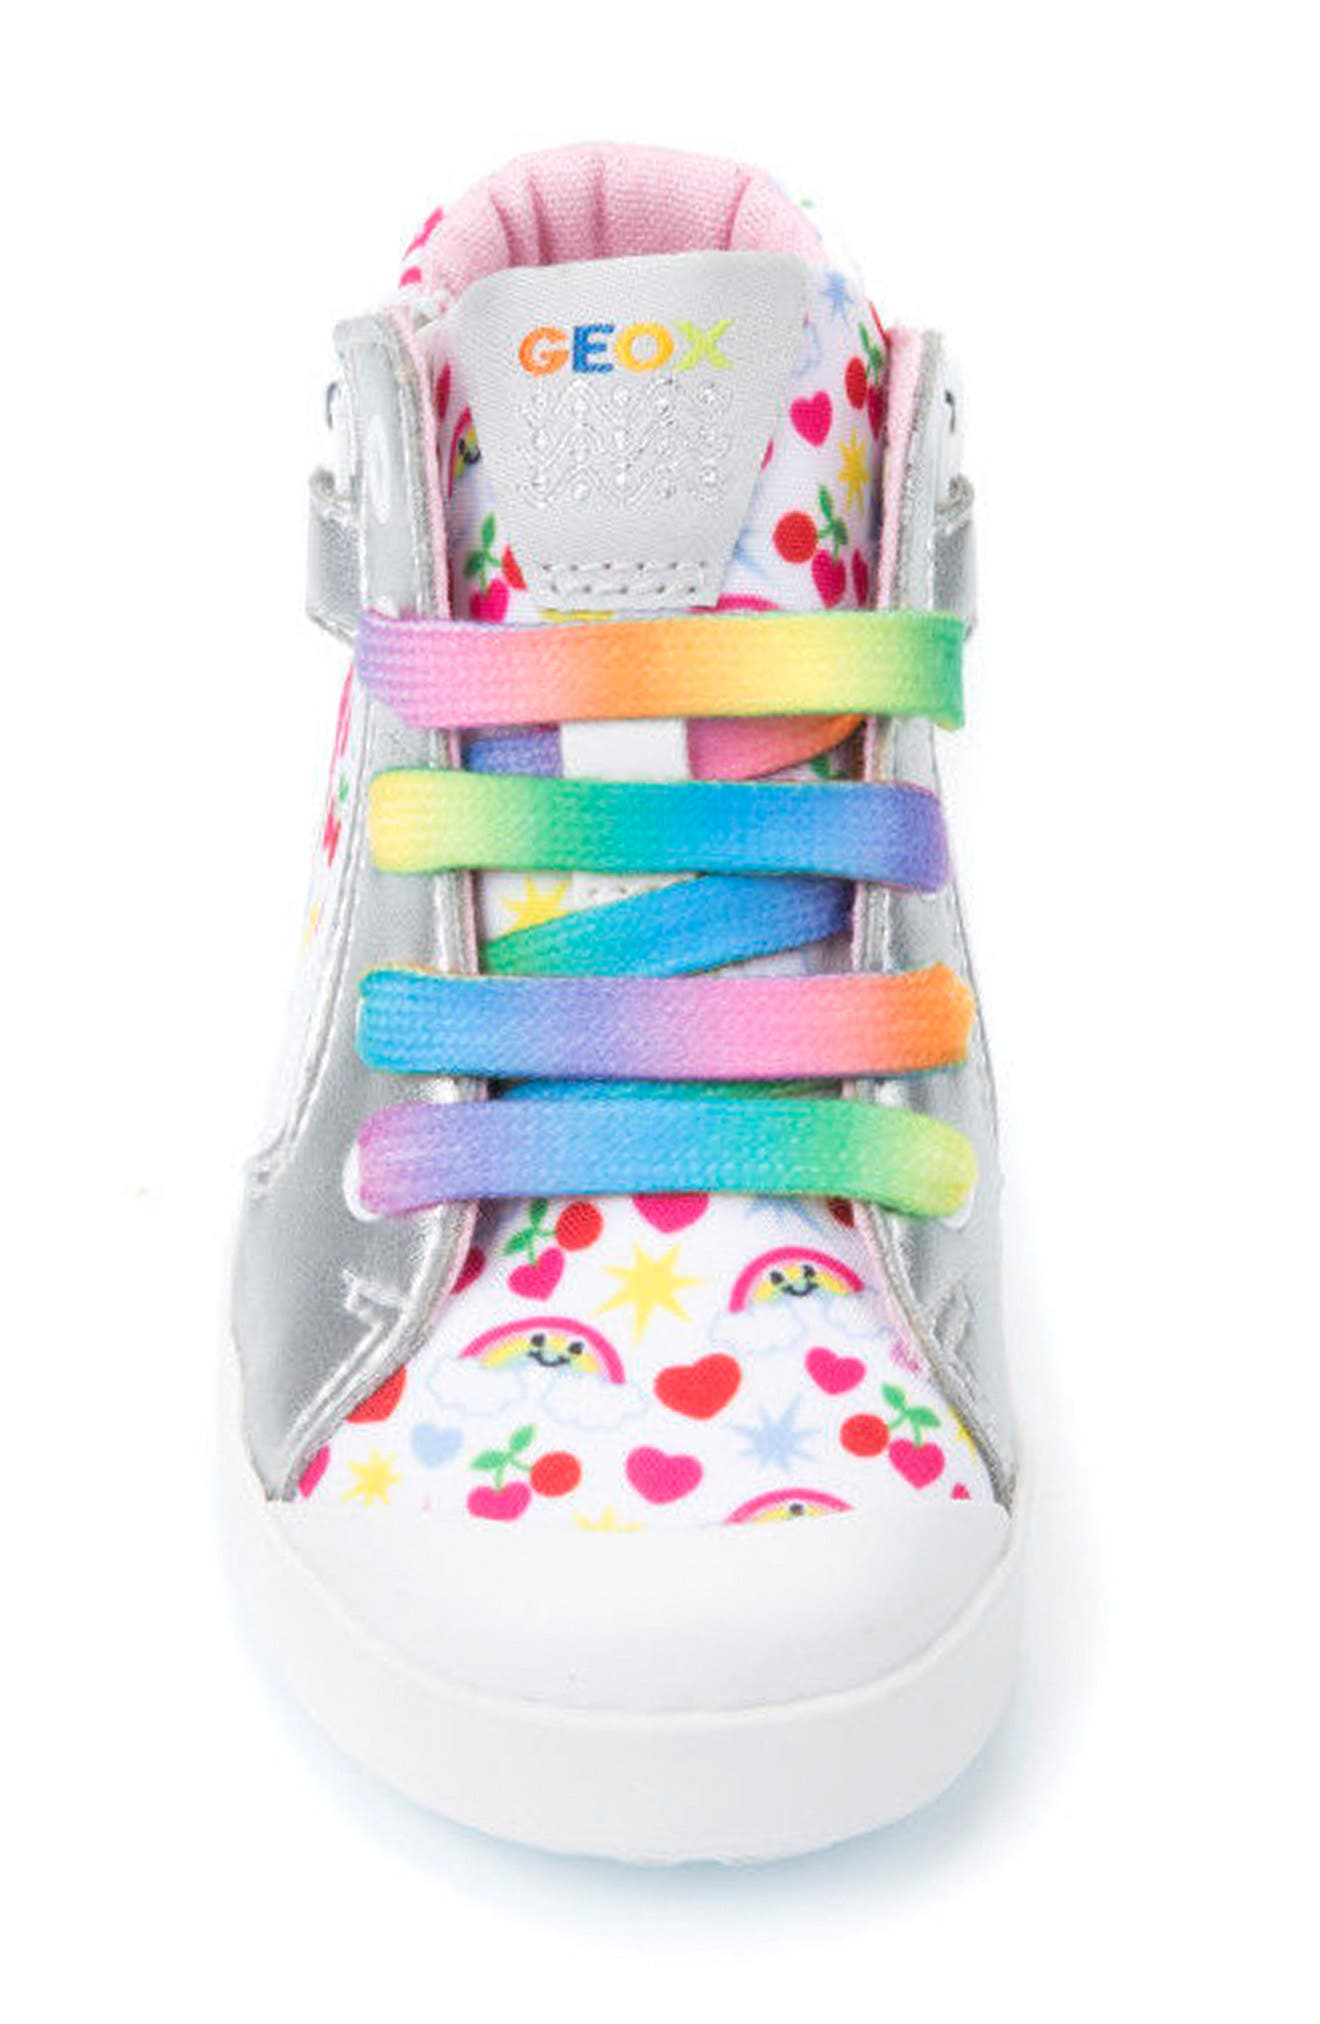 Kilwi Patterned High Top Sneaker,                             Alternate thumbnail 4, color,                             White/ Multicolor